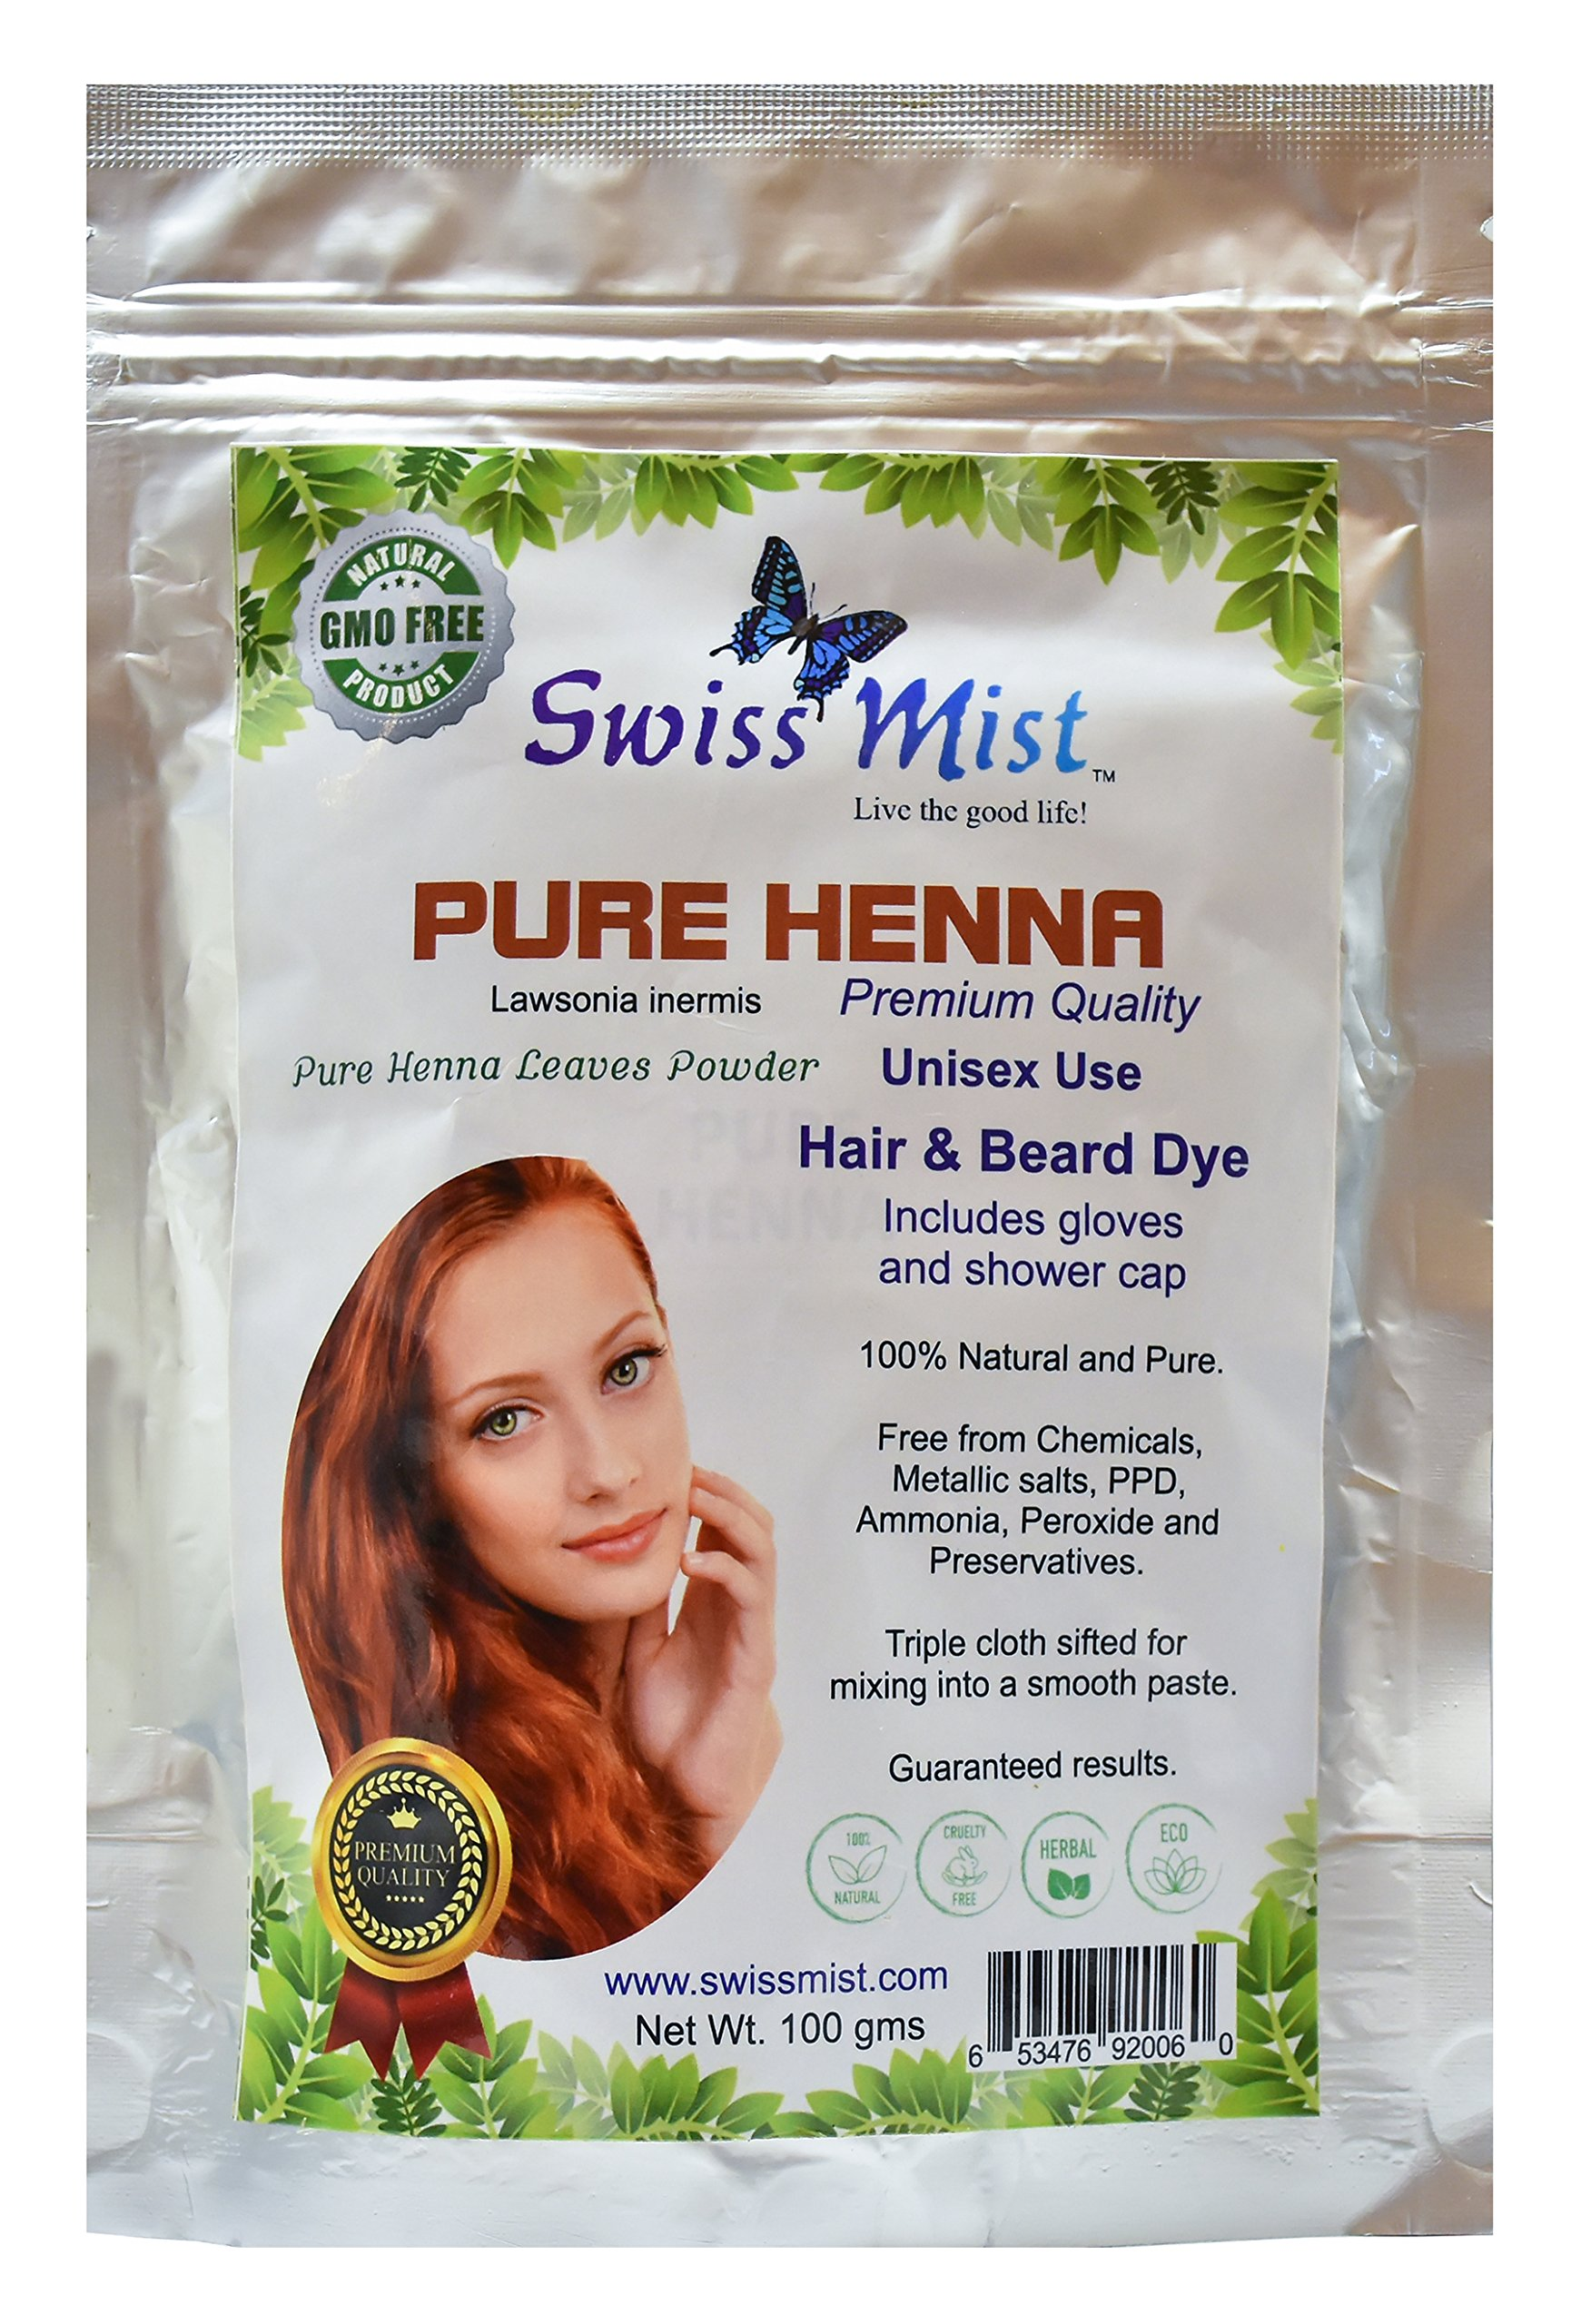 Swiss Mist Pure Henna Hair Dye 100% Natural, No Chemicals, Metallic Salts, Free from PPD, Ammonia, Peroxide, GMO-Free, Triple sifted for Quality, Guaranteed Freshness; 100 Grams (3.52 oz) by SWISS MIST LIVE THE GOOD LIFE!